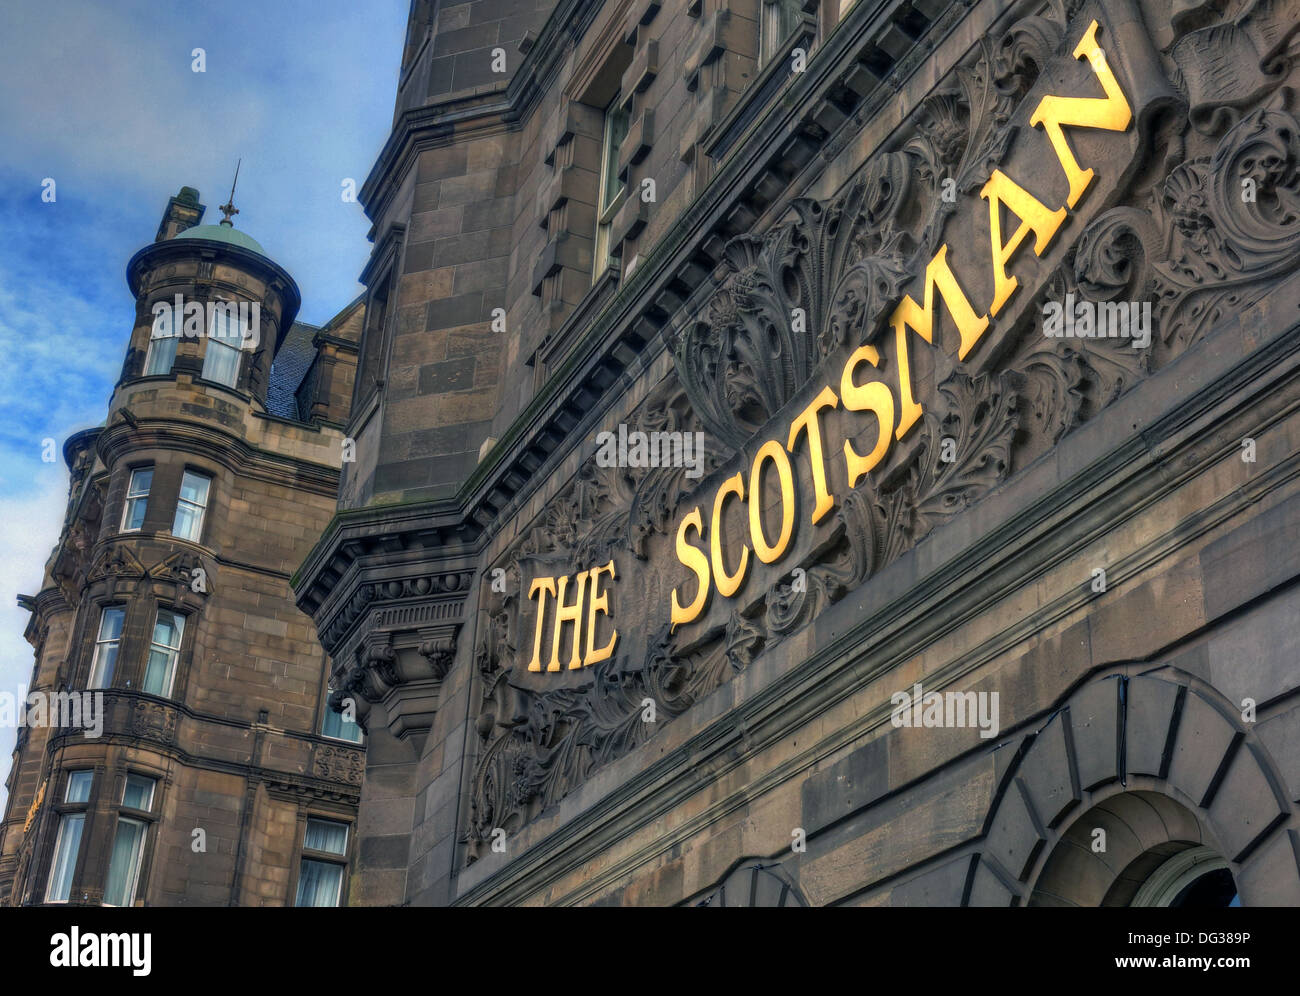 Scots,scottish,independence,independent,nationalist,SNP,national,party,poll,vote,voting,nation,city,North,bridge,south,southbridge,The,Edinburgh,Scotland,UK,hotel,bar,bars,pub,pubs,press,news,paper,tower,history,historic,building,buildings,print,printing,house,gold,on,stone,work,stonework,Gotonysmith,editorial,offices,office,reception,and,trading,rooms.,With,its,stunning,marble,pillars,and,ornate,balcony,Buy Pictures of,Buy Images Of,Scotlands History,Scotlands History